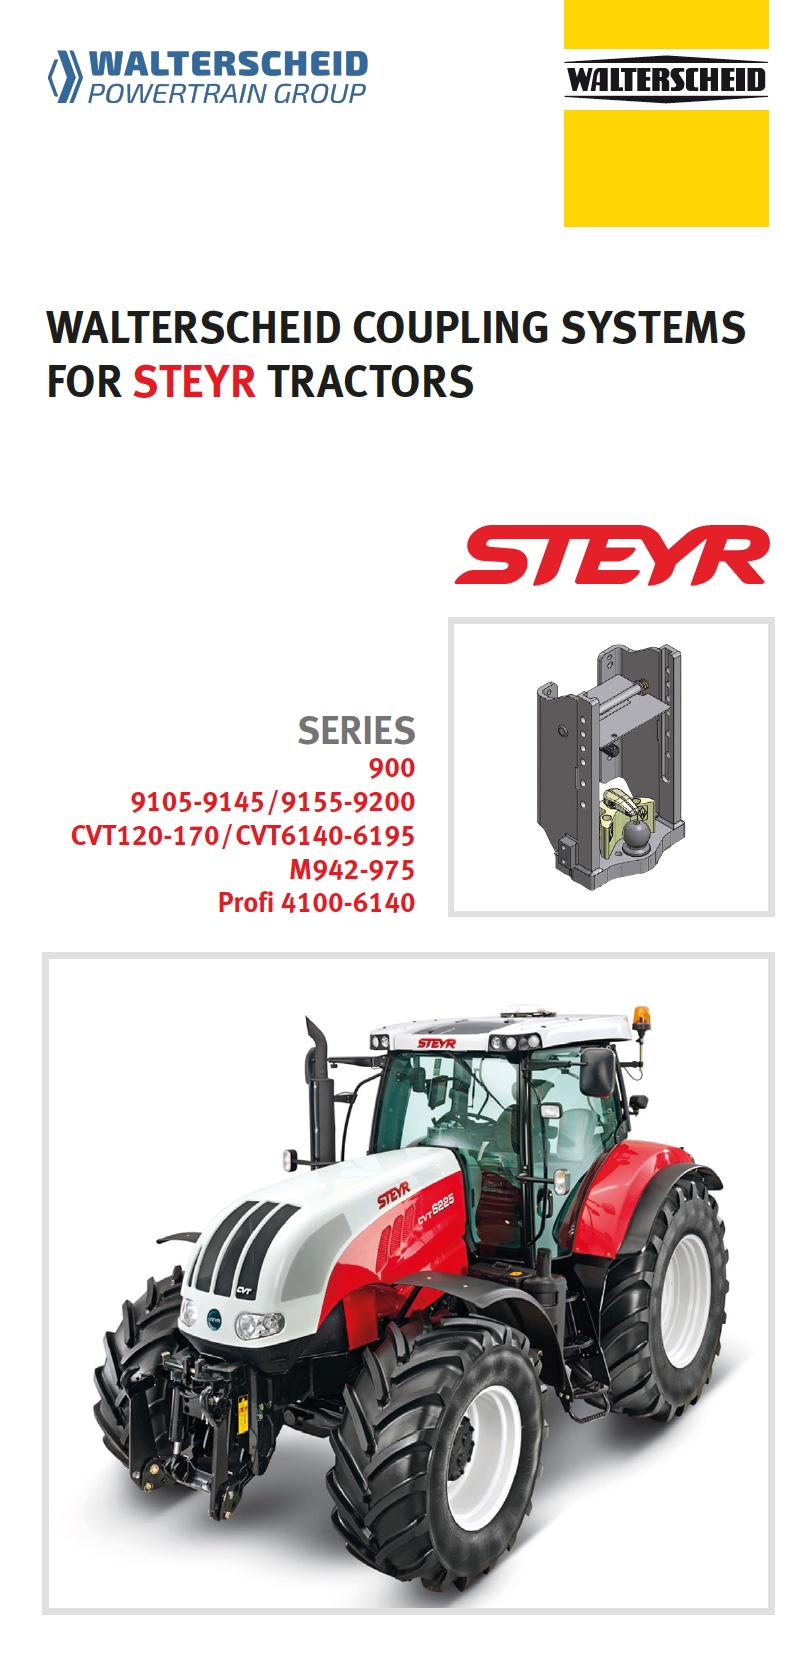 Coupling systems for Steyr tractors